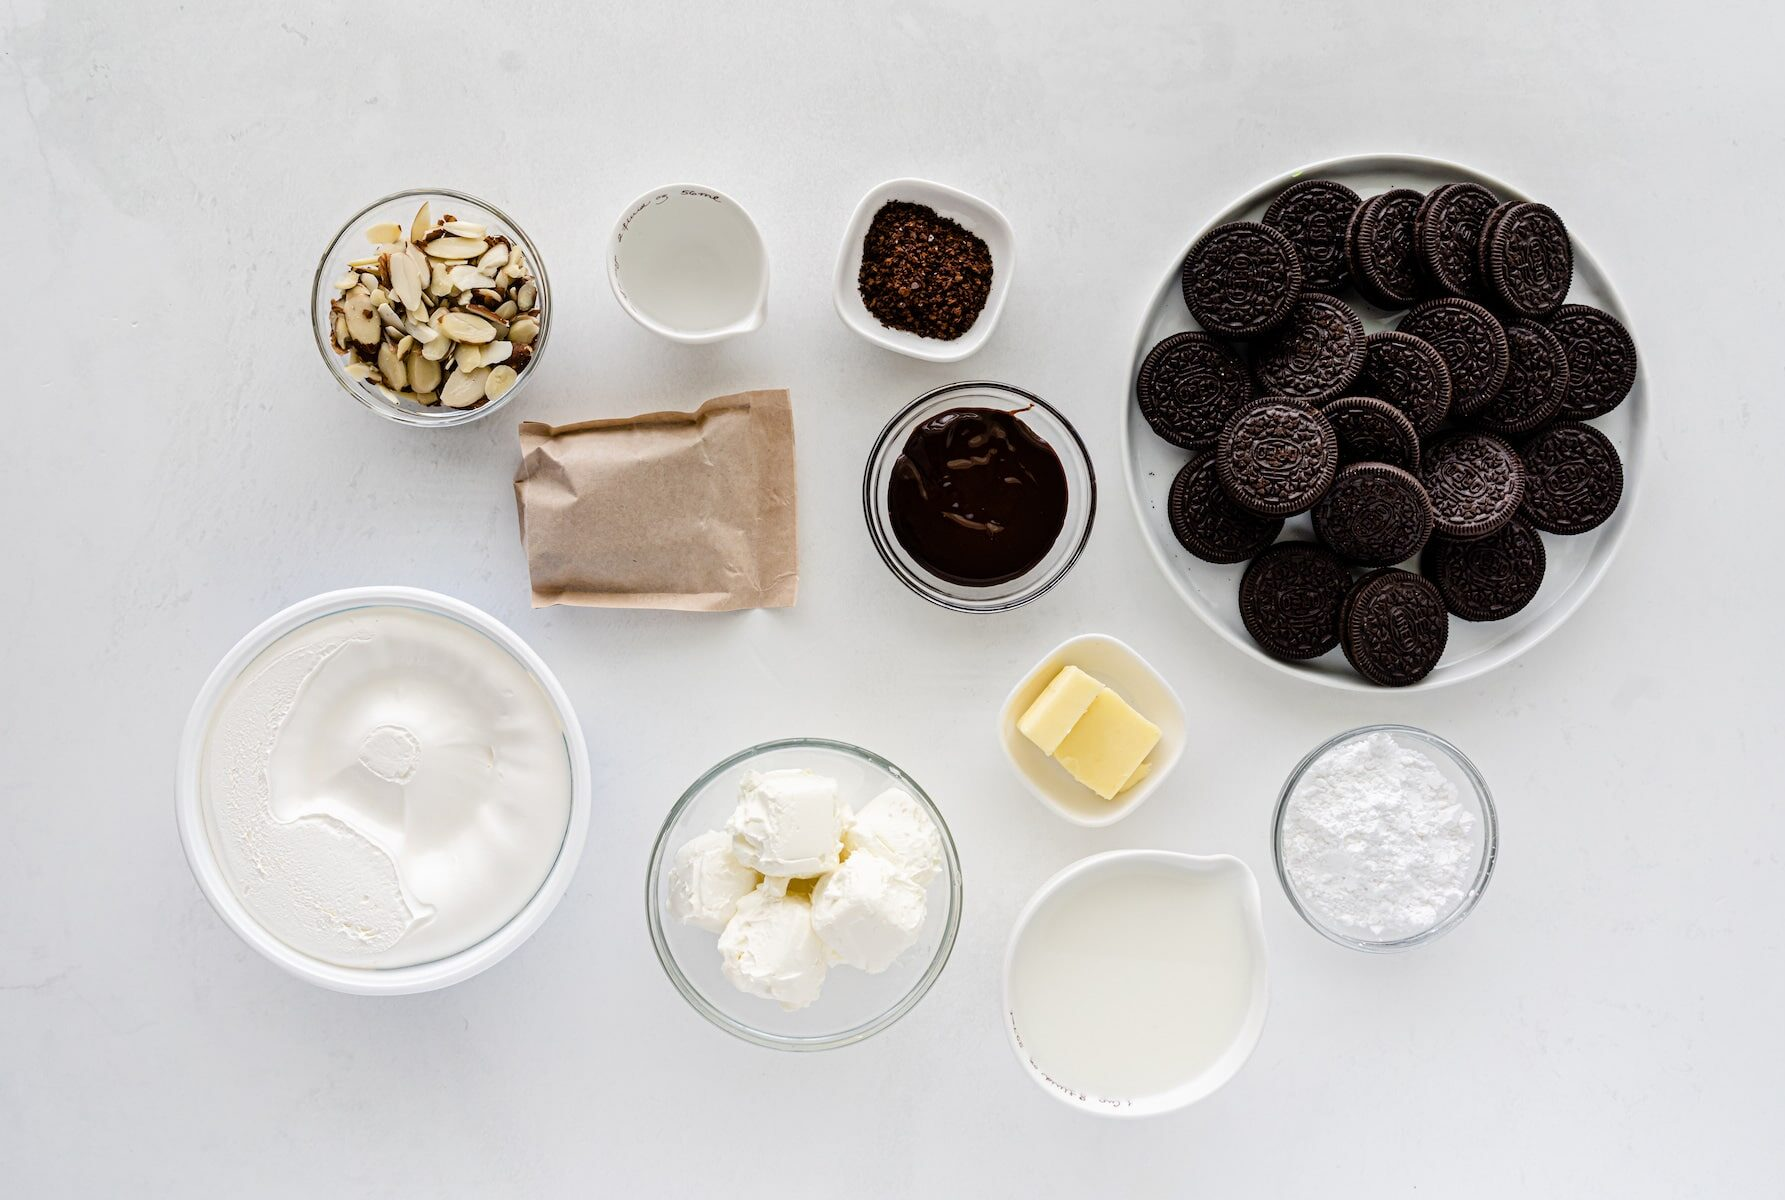 ingredients in mocha mud pie - bowls of Oreos, almonds, whipped cream powdered sugar and butter